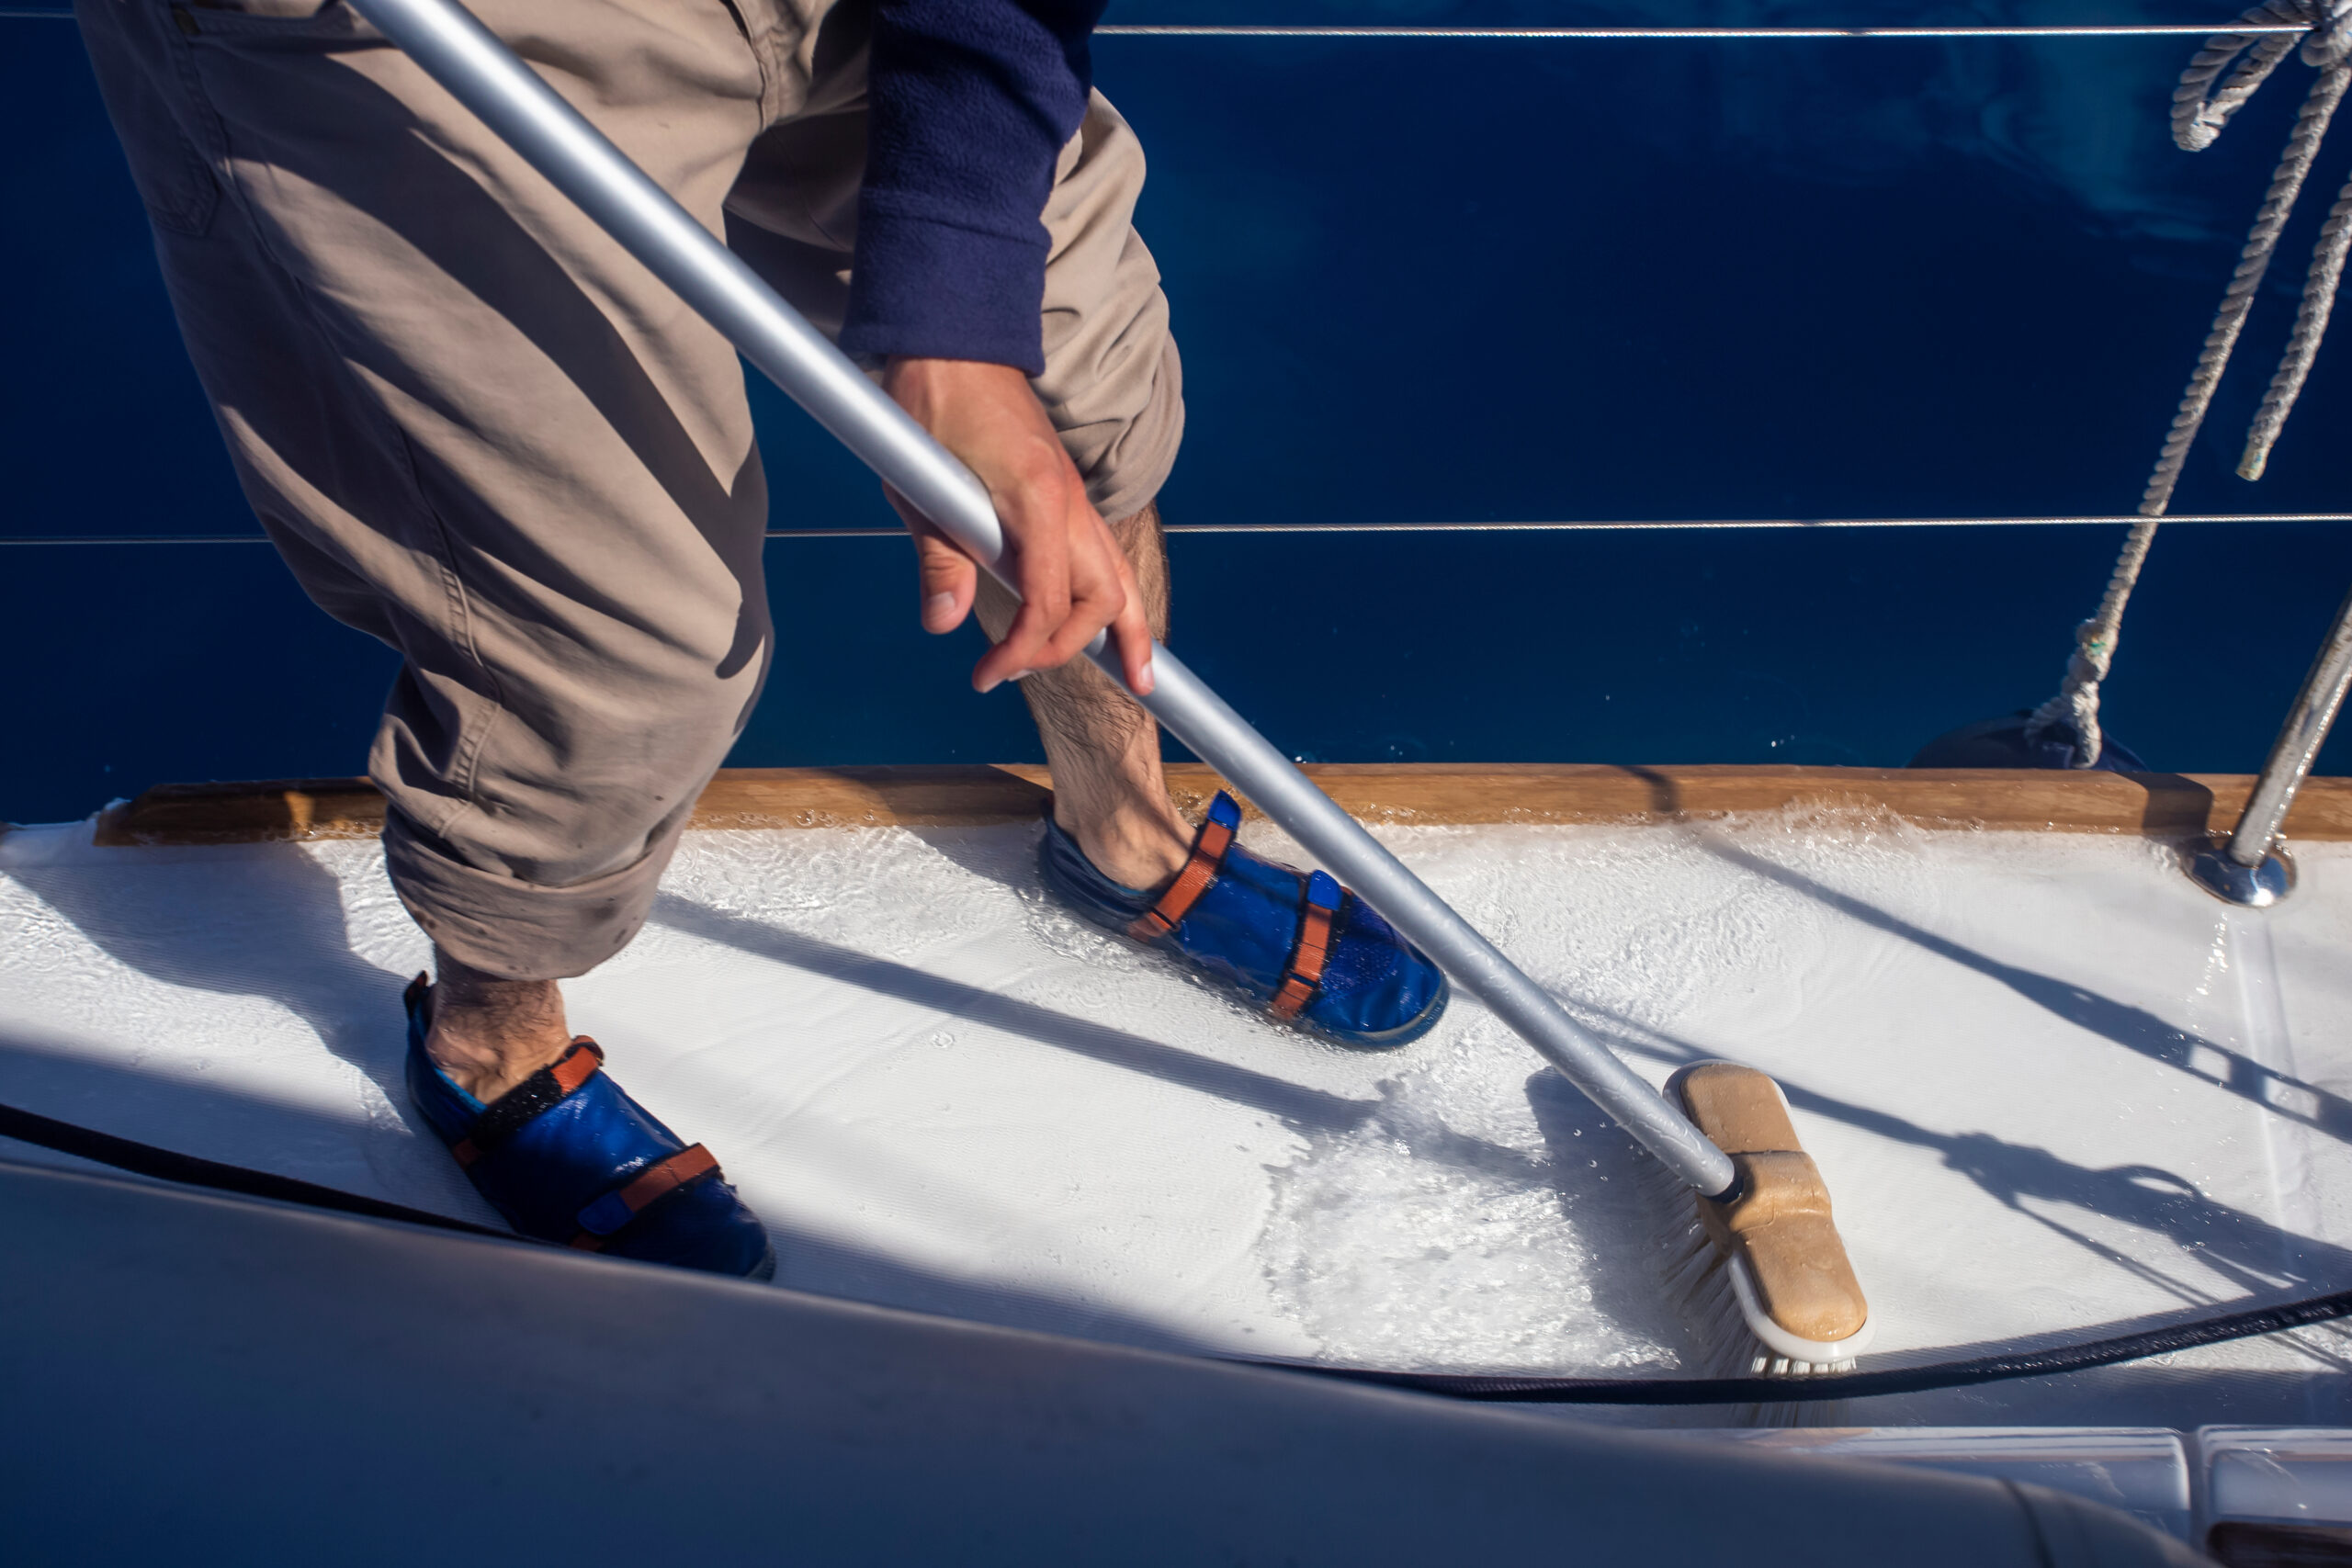 How Often Should Your Boat Be Cleaned? post thumbnail